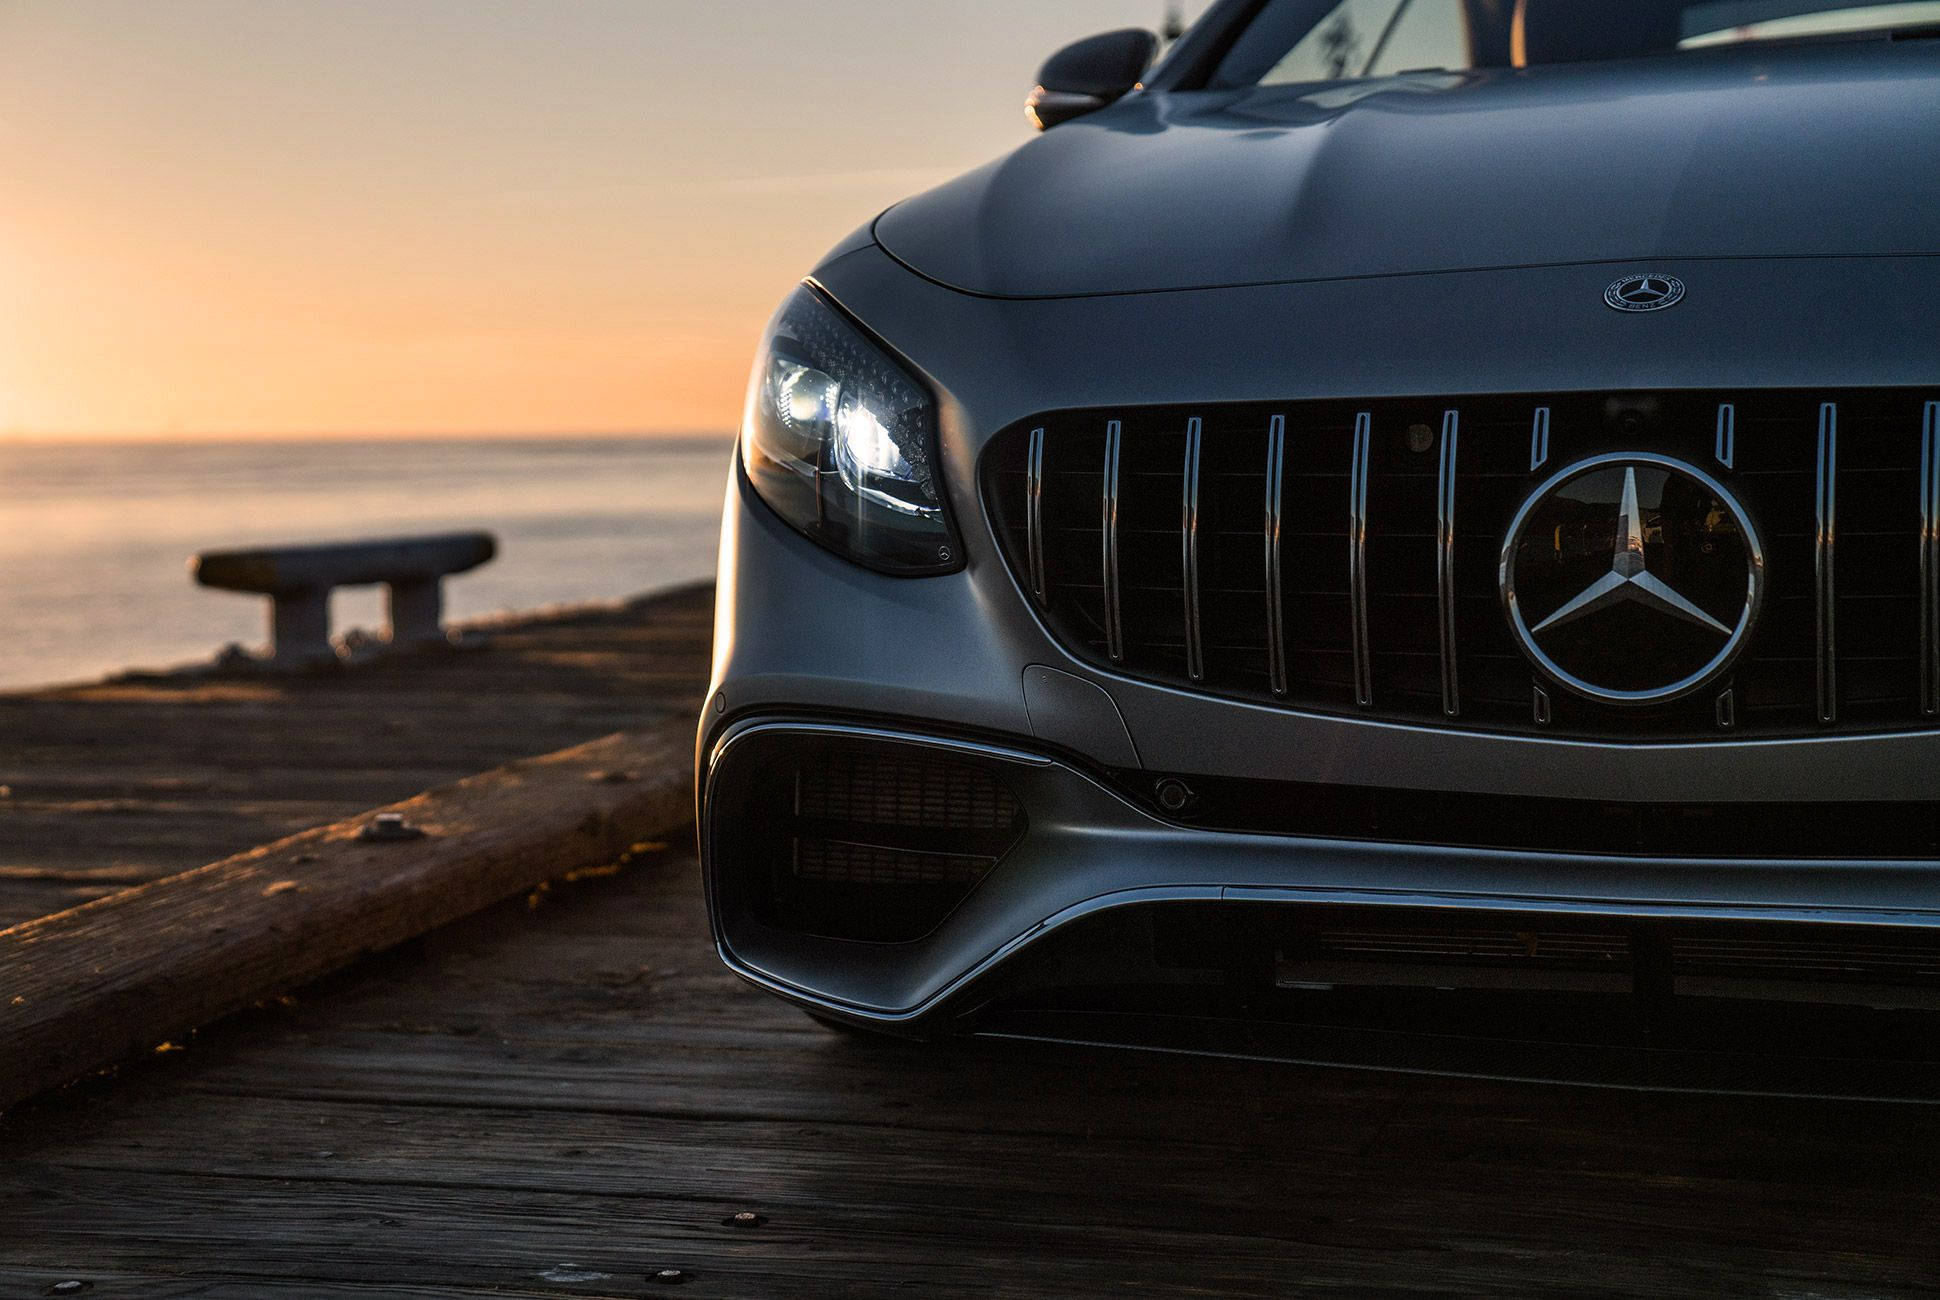 Mercedes-Benz-S63-AMG-Coupe-Review-gear-patrol-6